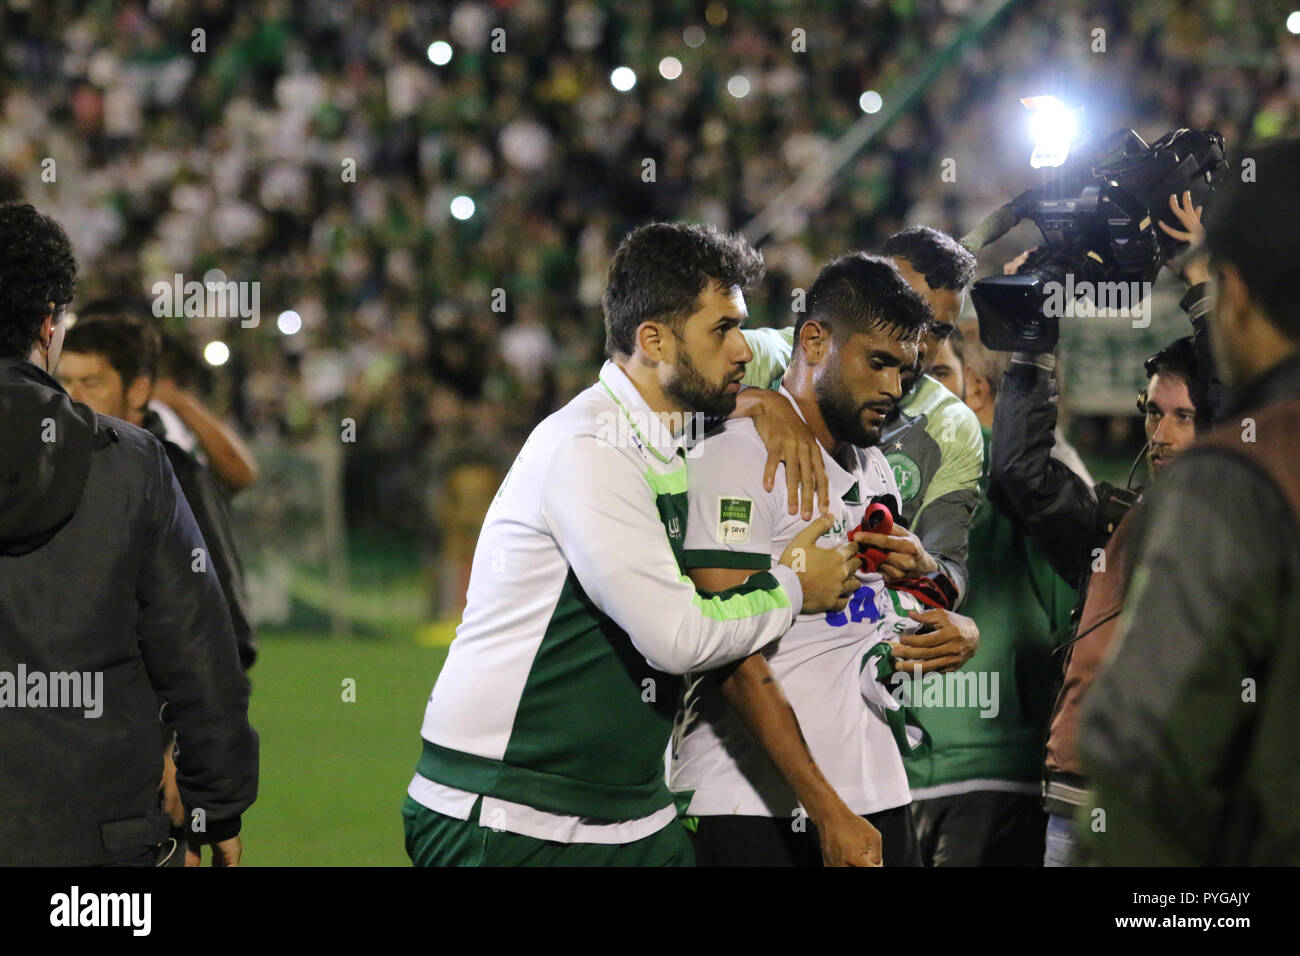 SC - Chapeco - 27/10/2018 - Brazilian A 2018, Chapecoense x Am rica-MG - player Luan do Am rica-MG contained by the teammates at the end of the game, tumult, at the end of the match during Arena Conda Stadium for the Brazilian championship A 2018. Photo: Renato Padilha / AGIF - Stock Image